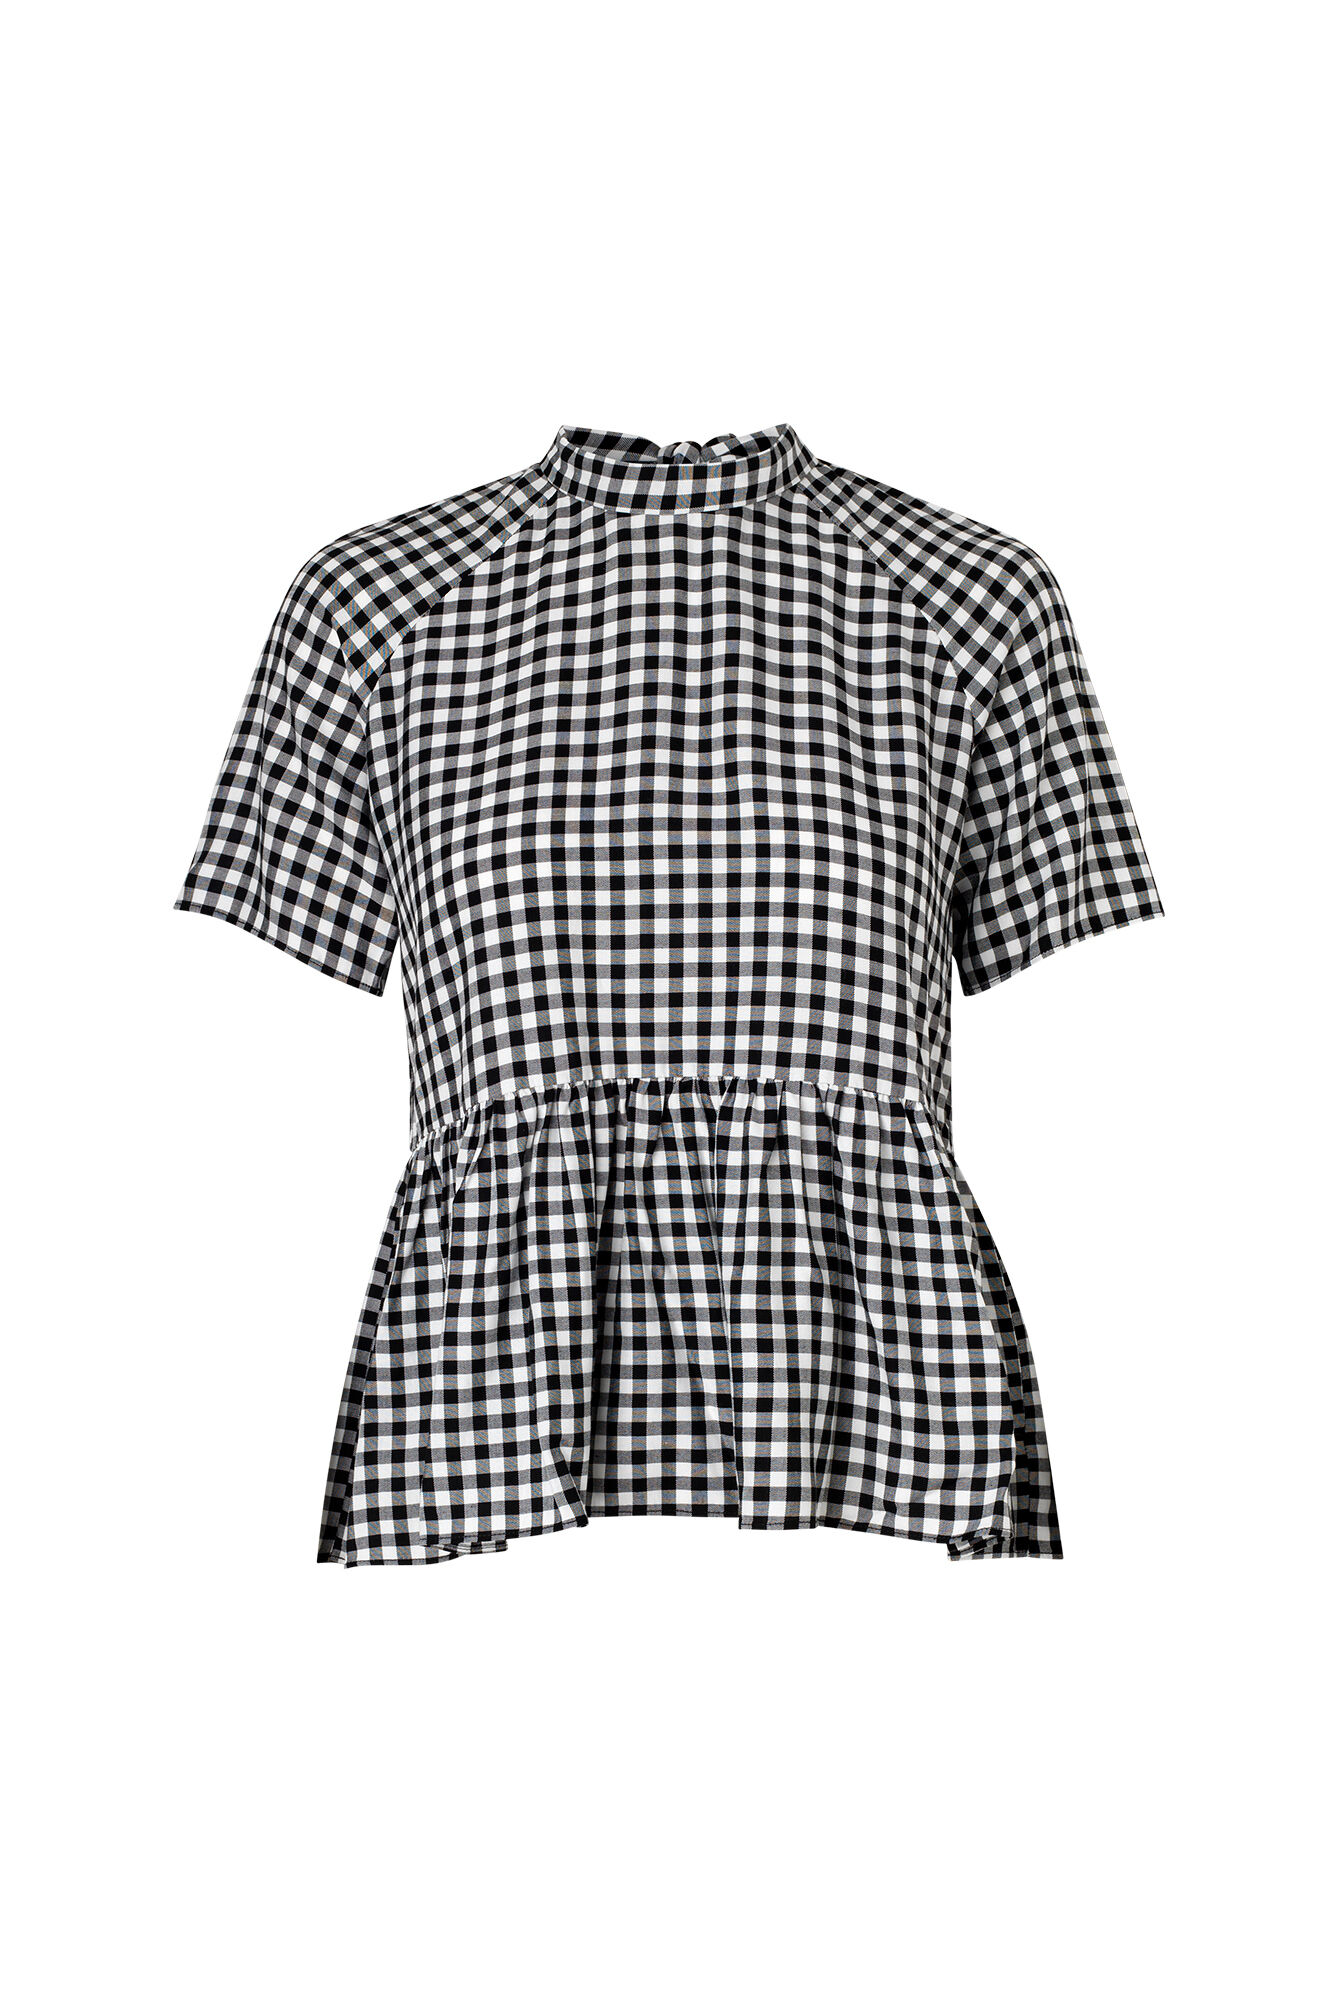 ENOIL SS TOP 6473, GINGHAM CHECK